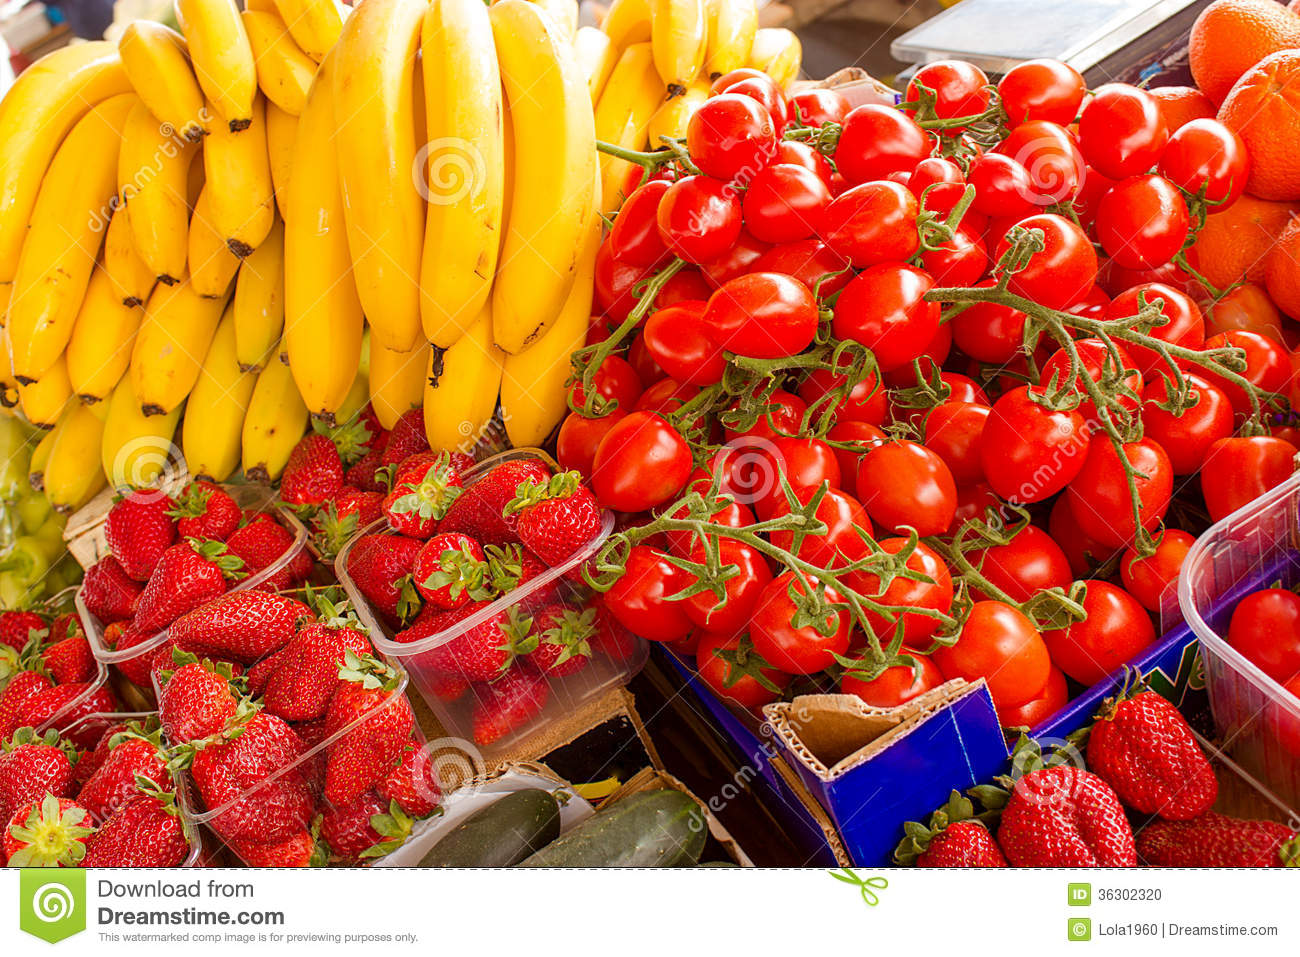 is tomato a fruit or a vegetable fresh fruit